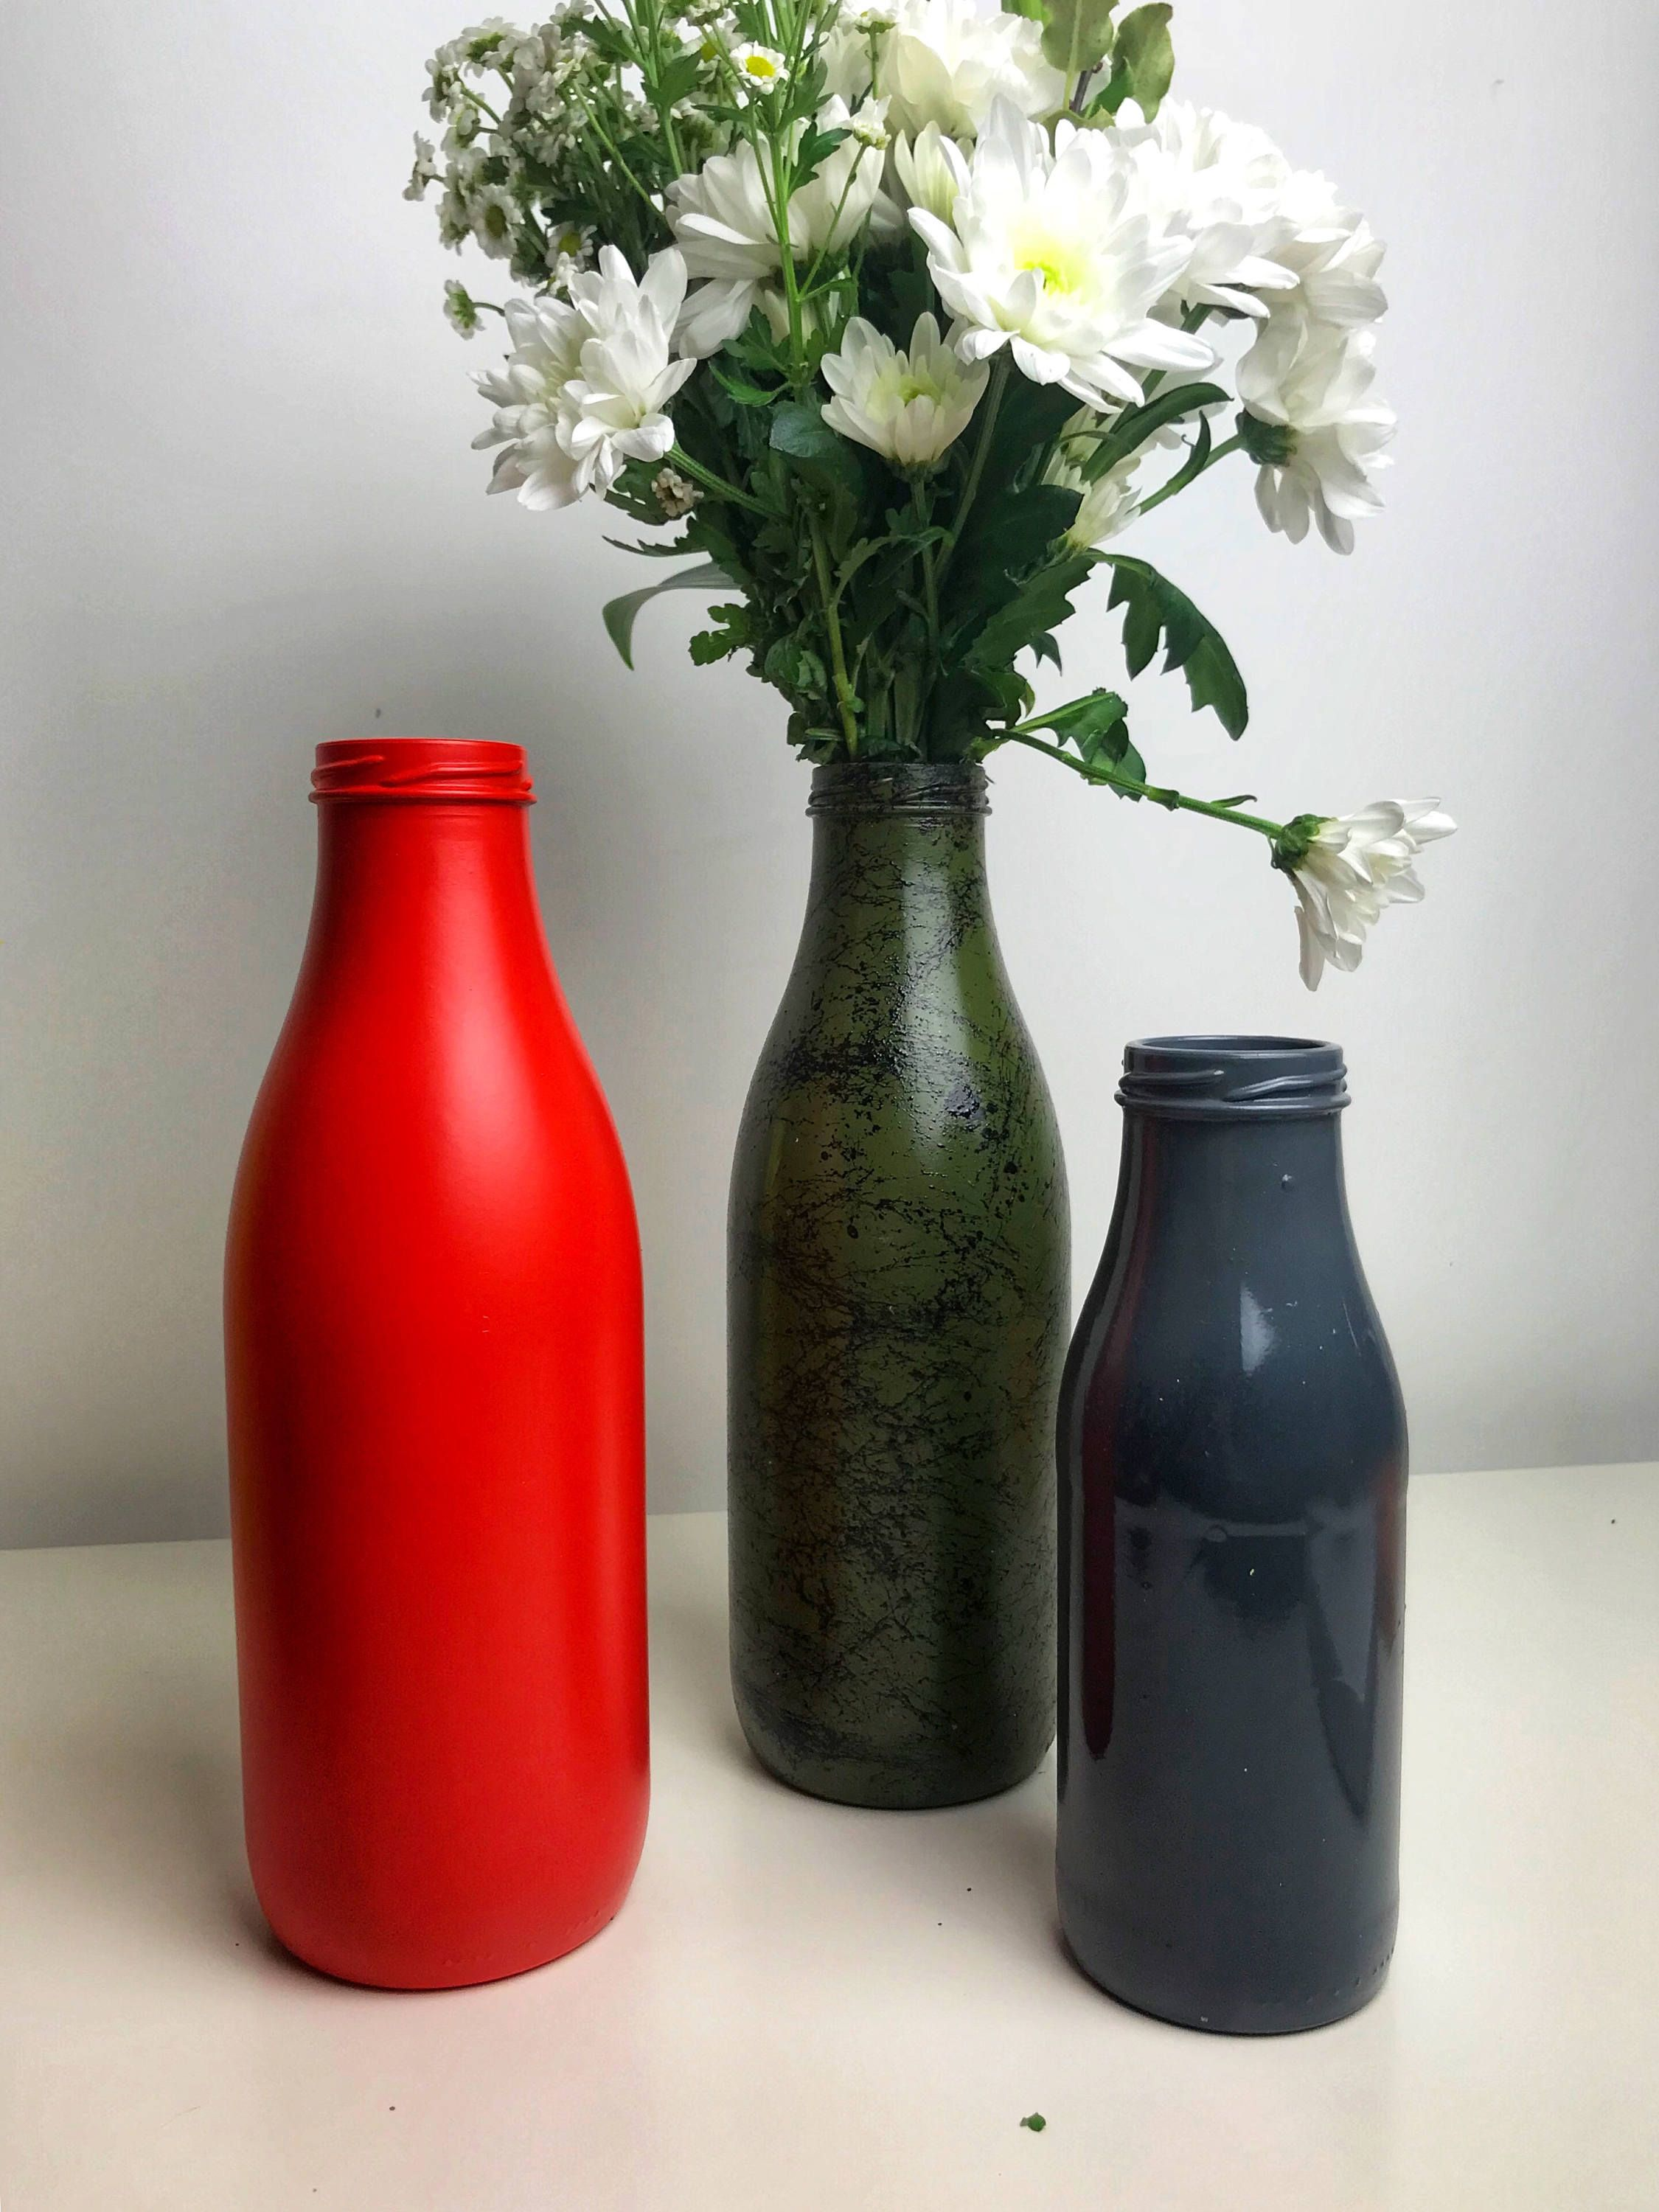 Flower Vase Variety Of Colors Bedside Table Decor Party Centerpiece Home Decor Bedroom Decor White Bedside Table Decor Red Vases Bottles Decoration